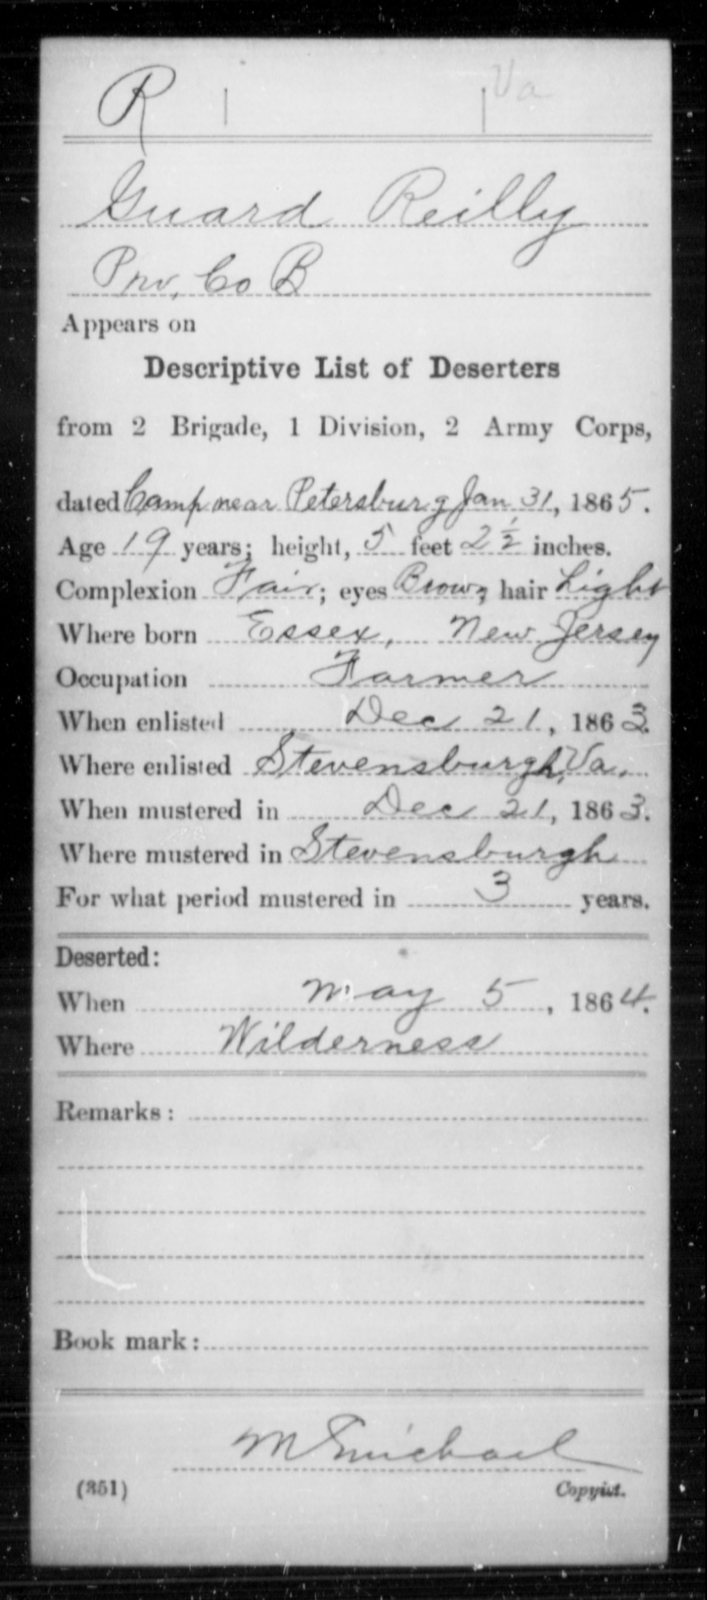 Reilly, Guard - Age 19, Year: 1865 - Miscellaneous Card Abstracts of Records - West Virginia